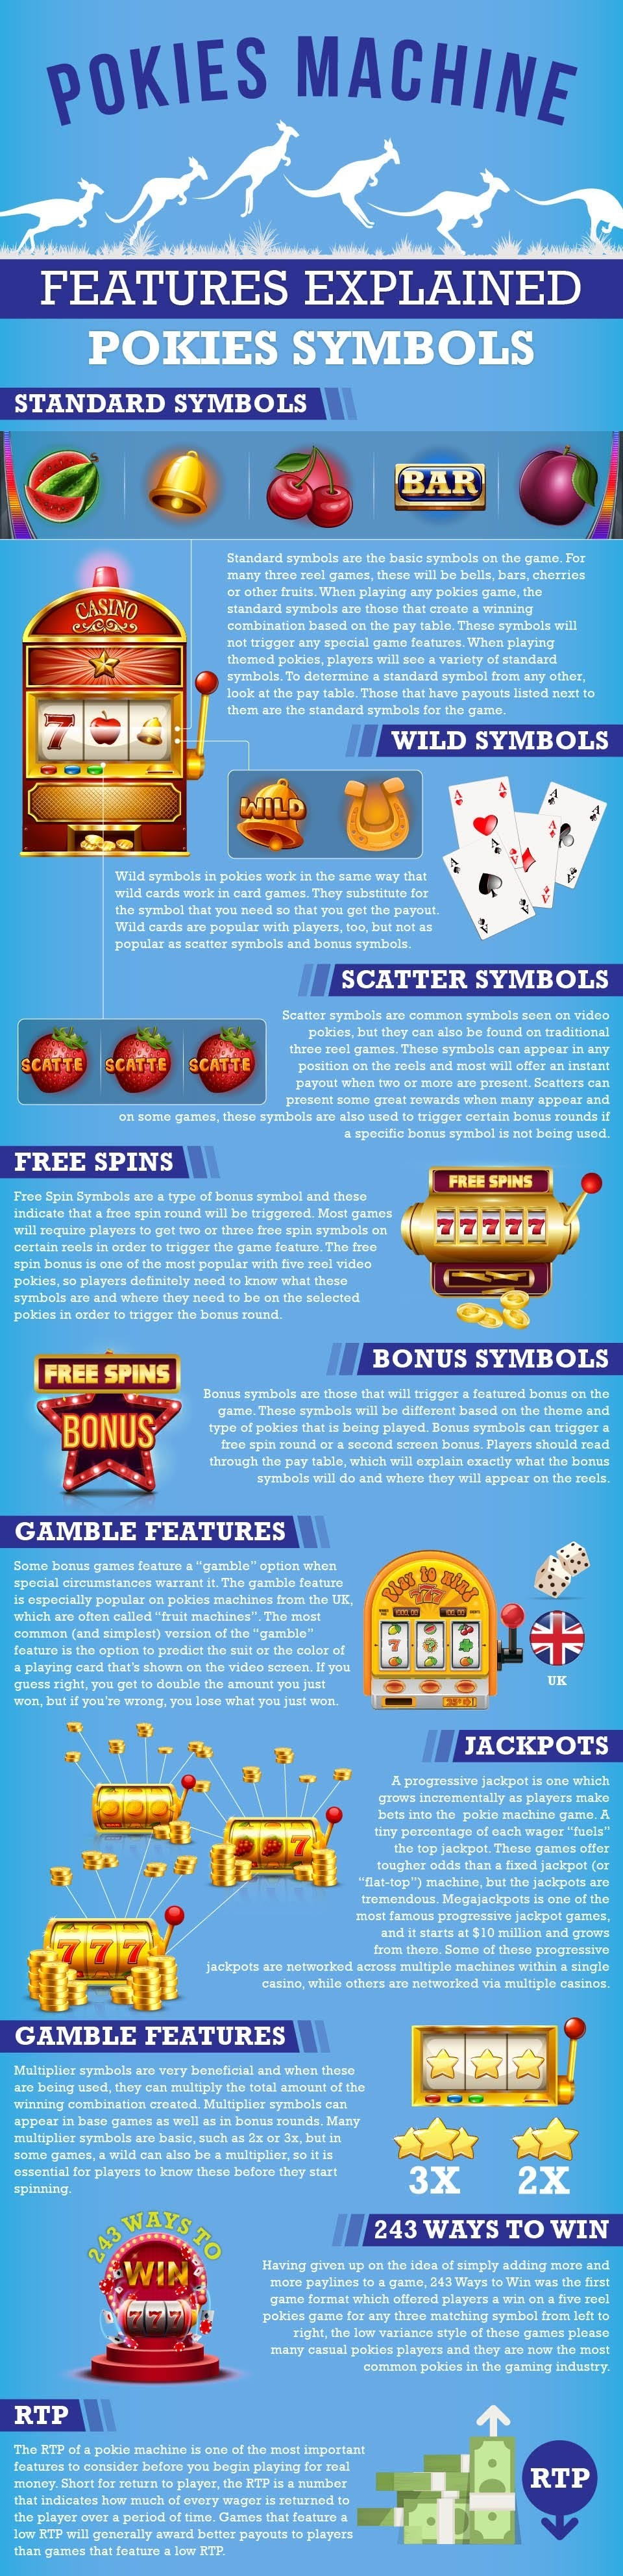 Best Features of Australian Pokies #infographic